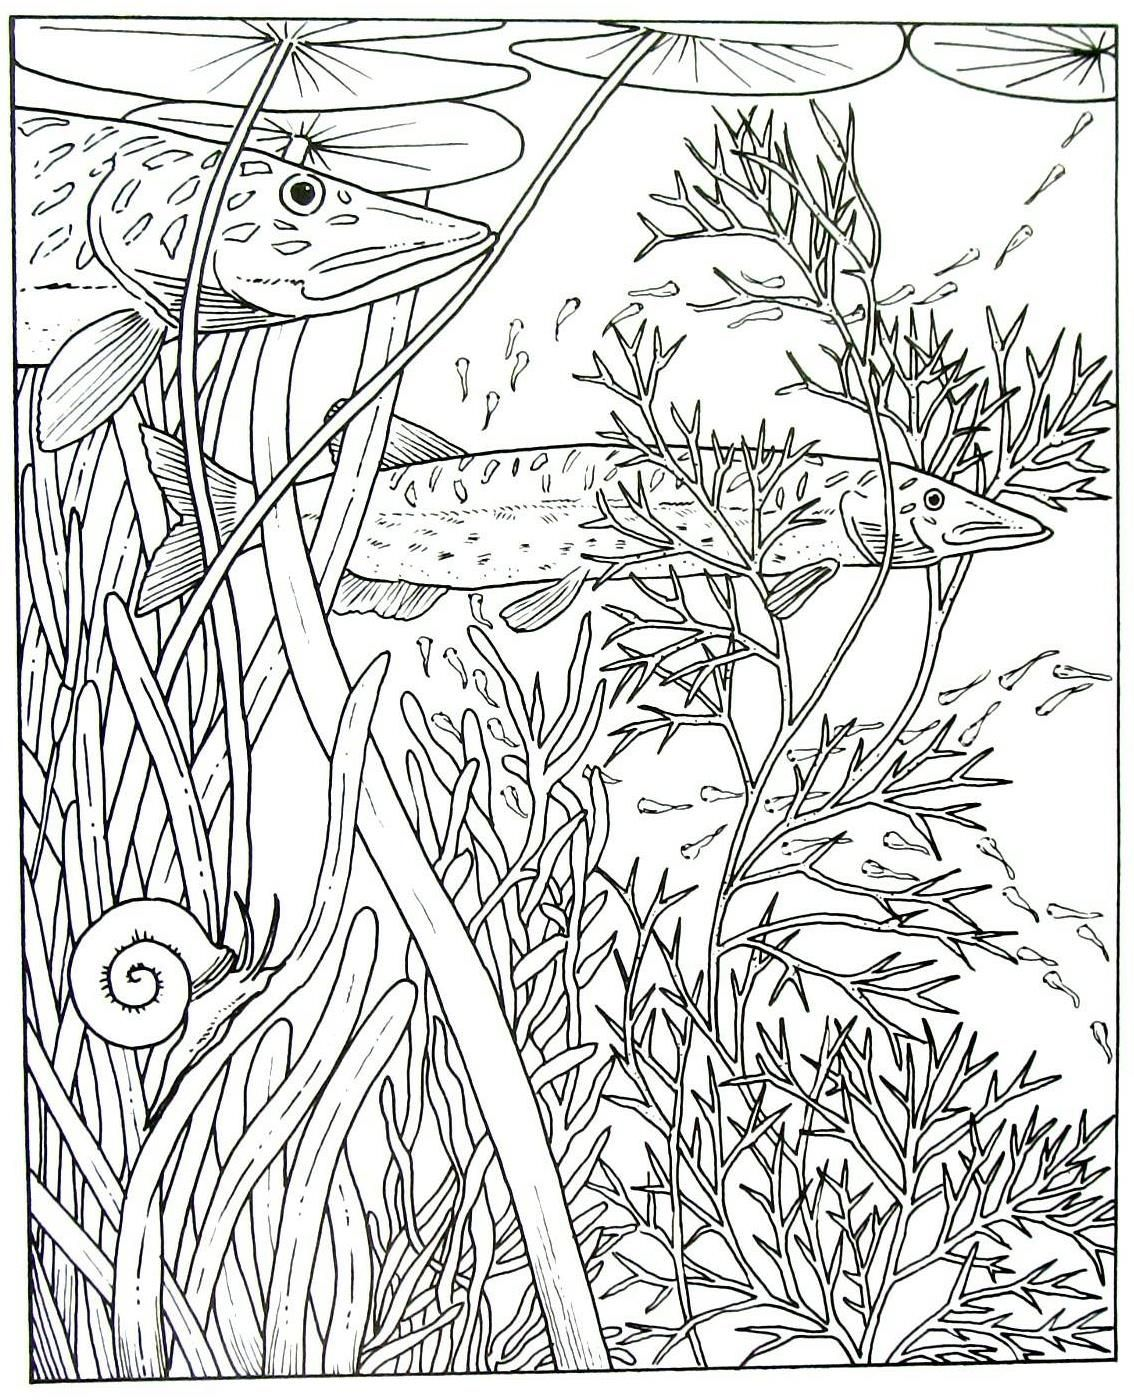 Northern Pike Animal Coloring Book Page Printable Animal